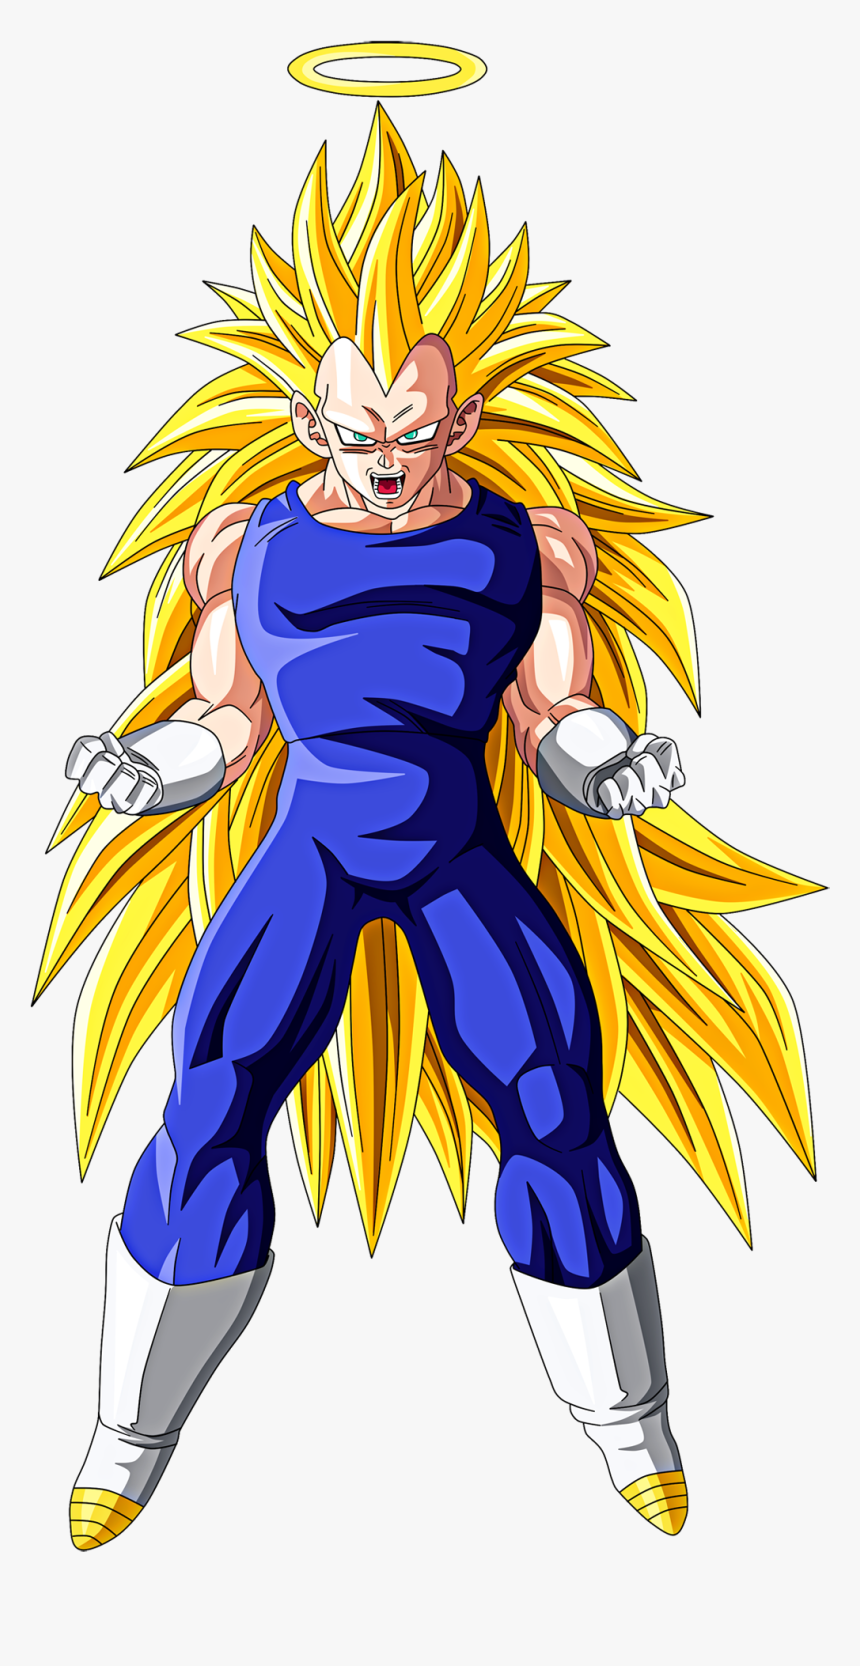 Dragon Ball Z Characters Vegeta - Dragon Ball Vegeta Ssj3, HD Png Download, Free Download